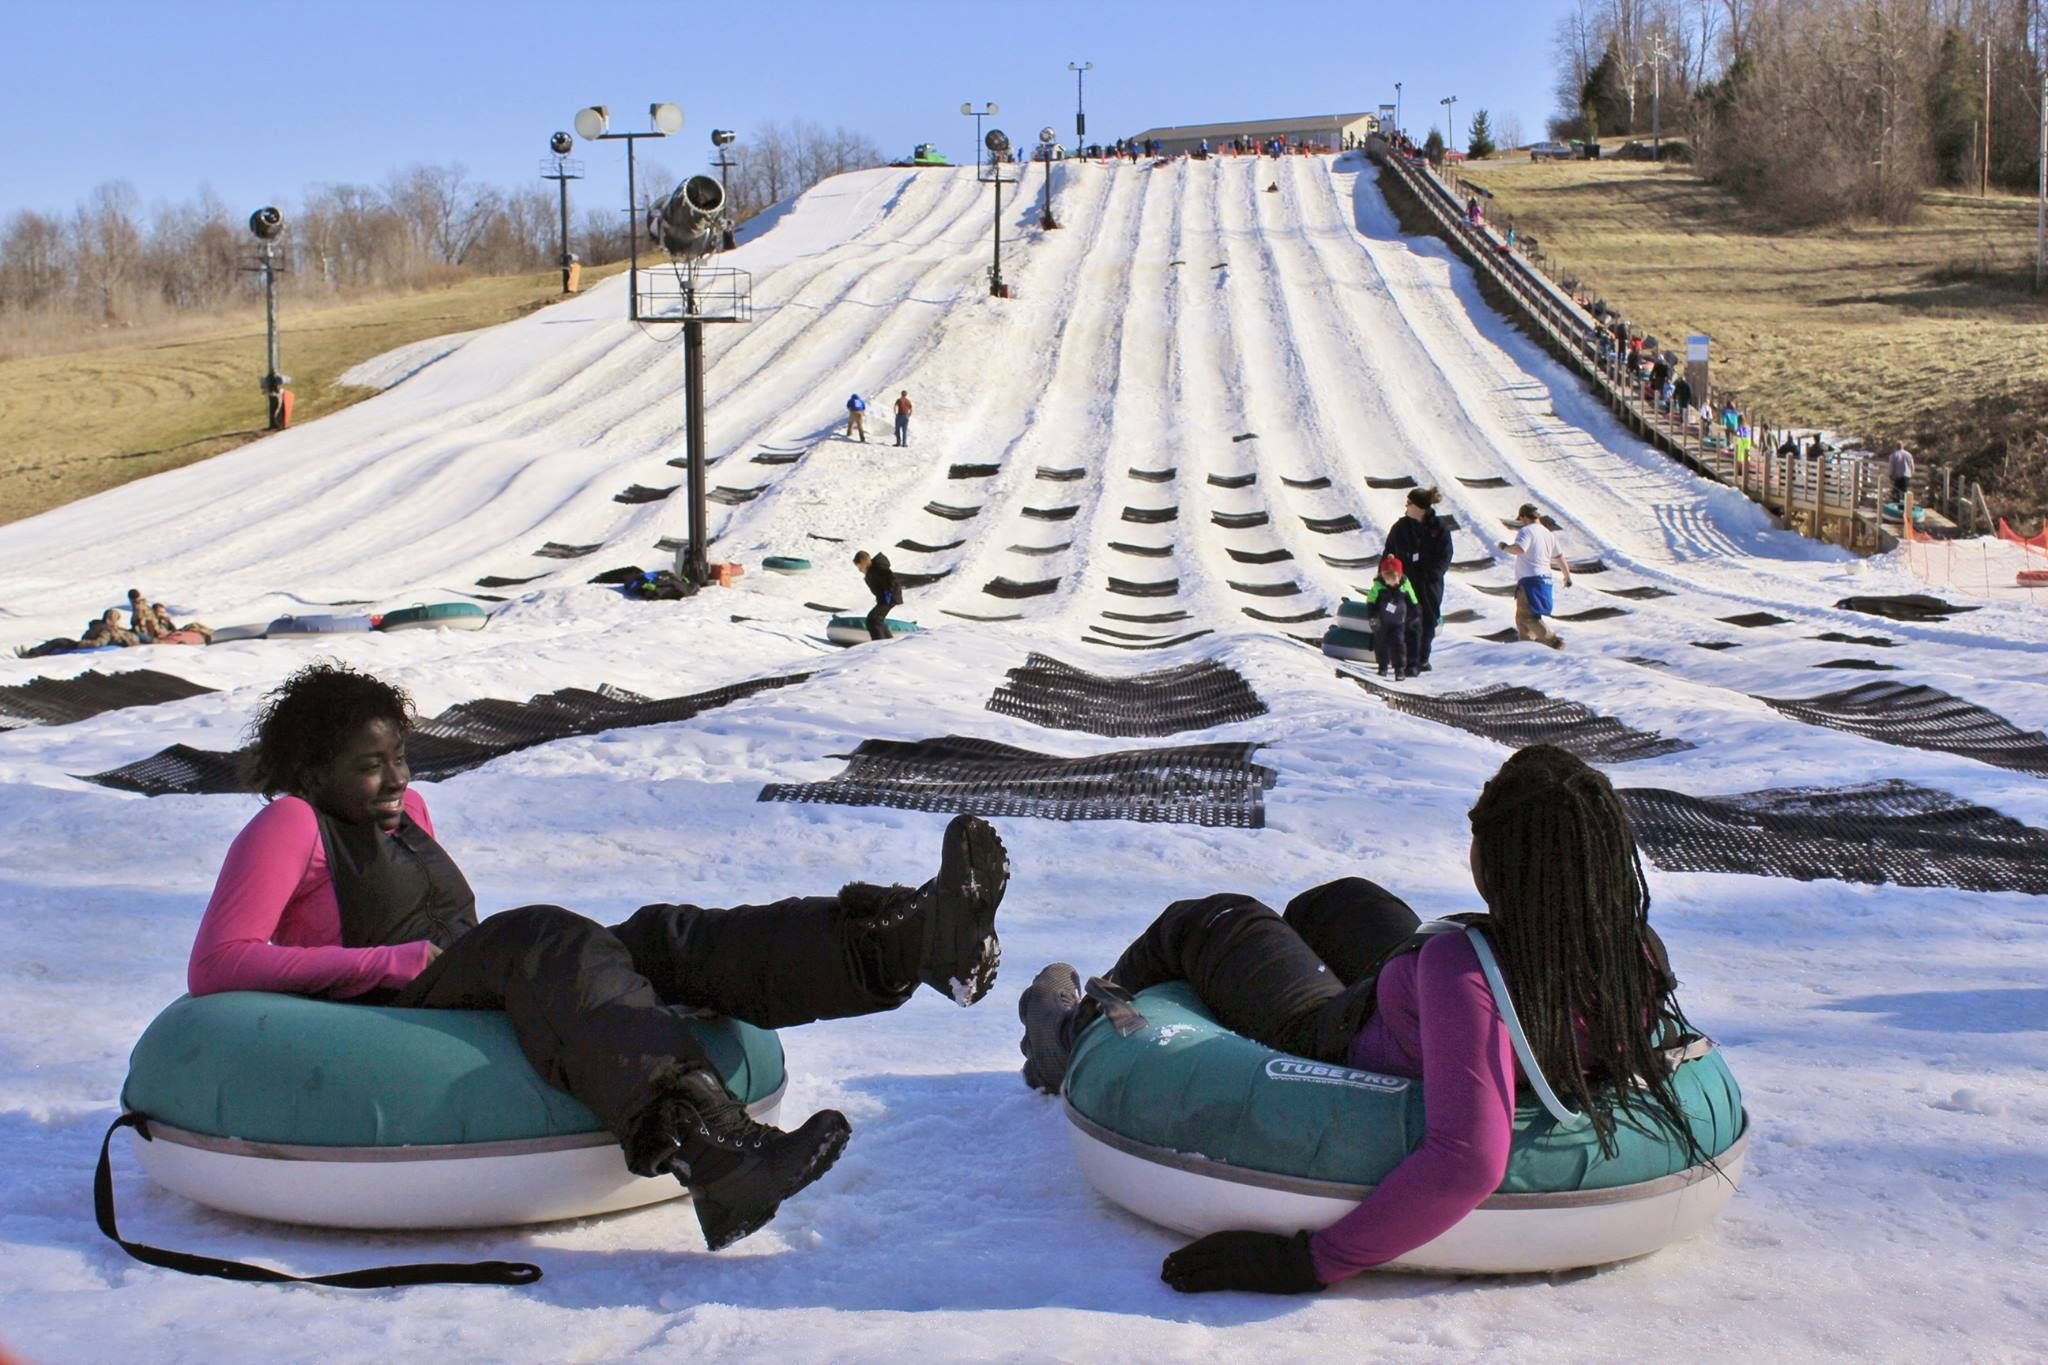 The Epic Snow Tubing Hill In Indiana Paoli Peaks Is Filled With Winter Thrills Snow Tubing Fun Winter Activities Winter Destination